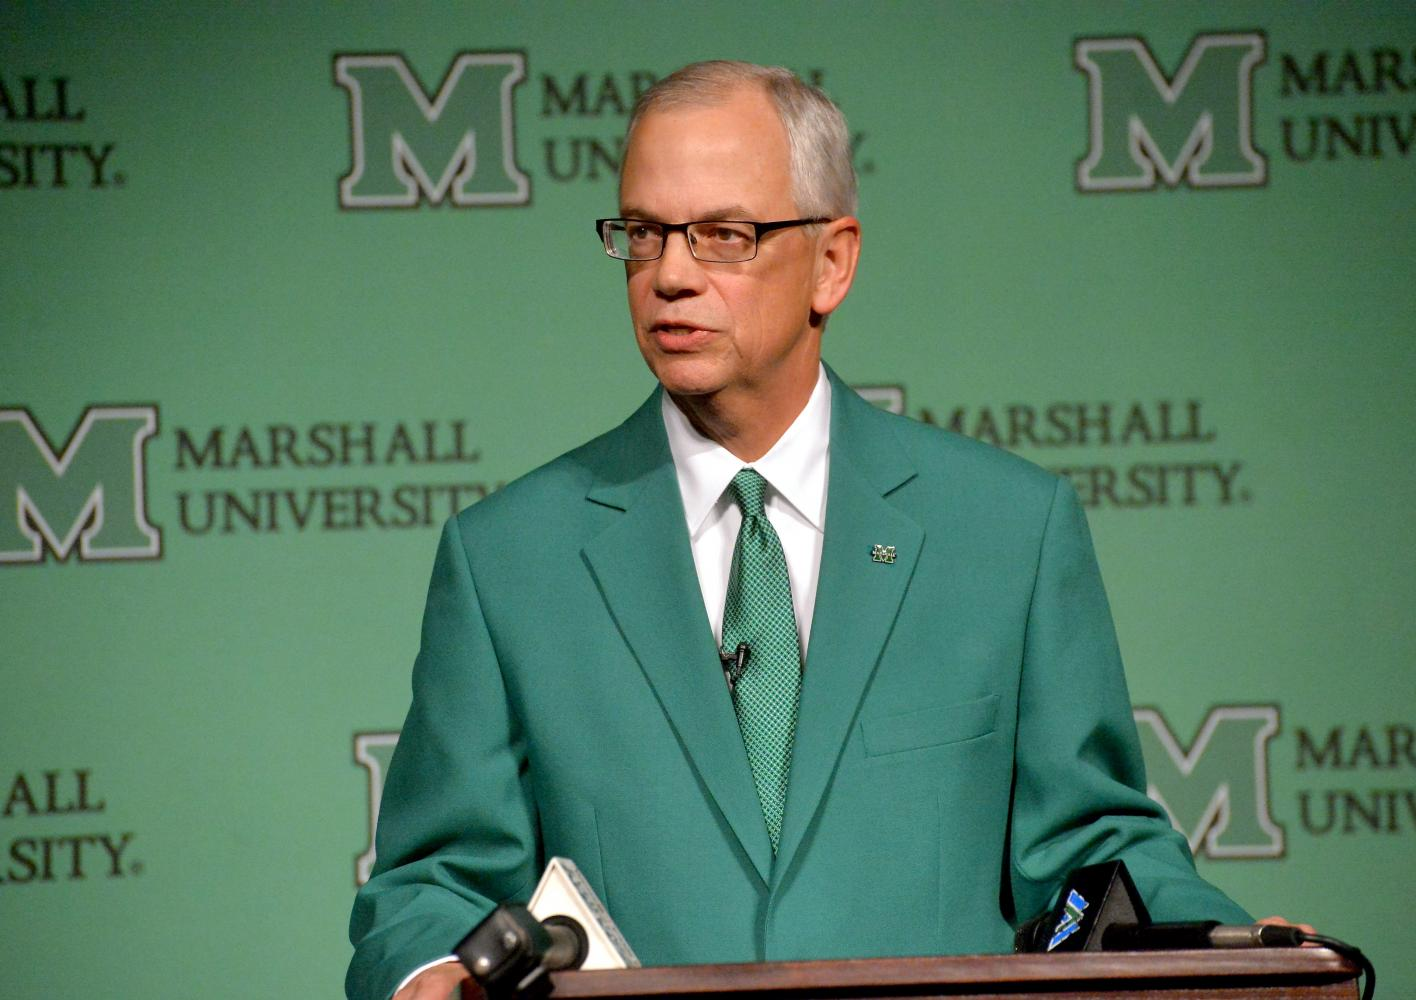 Marshall President Jerry Gilbert speaks at a meet-and-greet in December 2015.